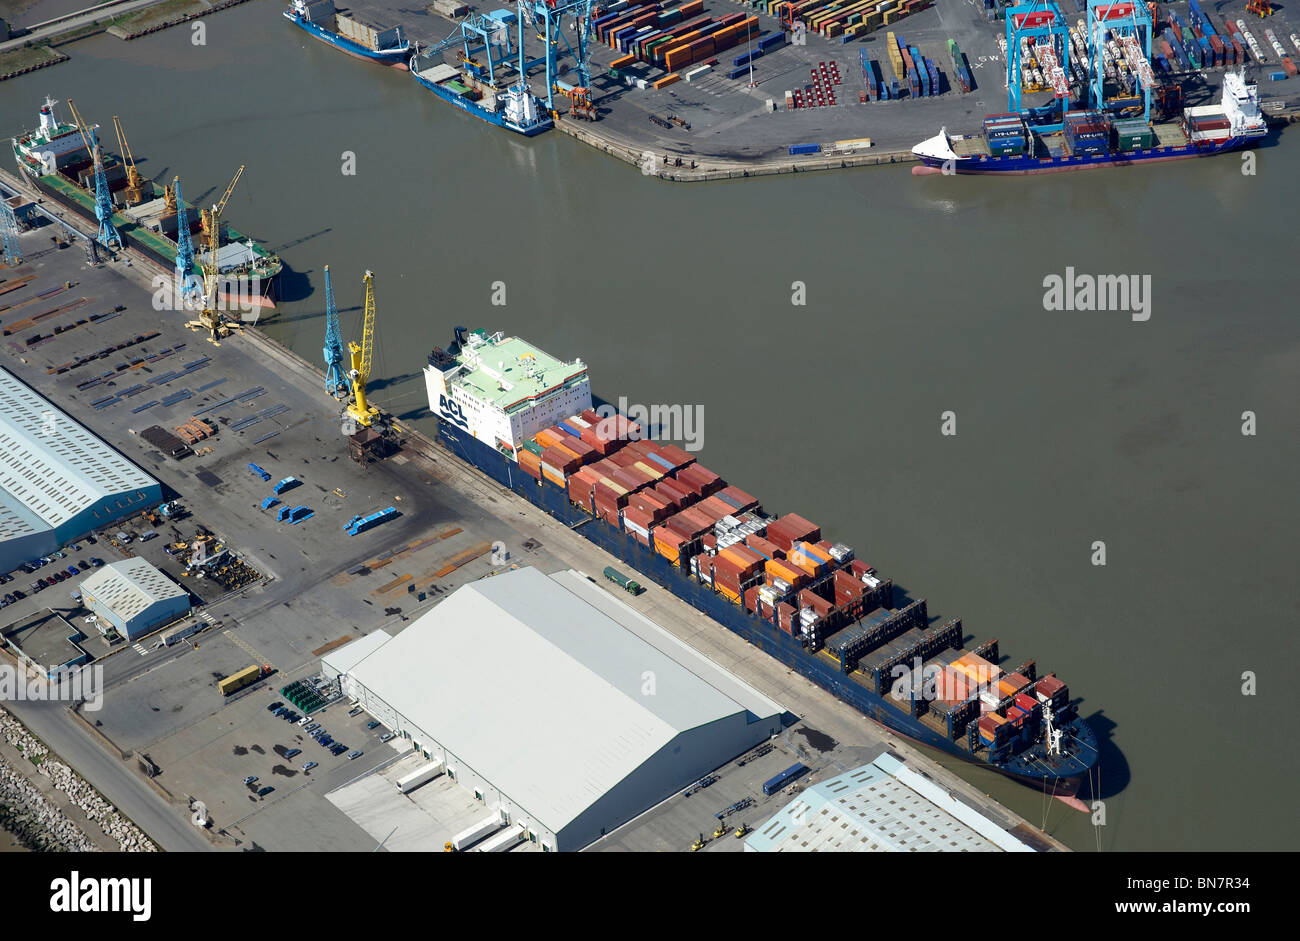 Liverpool Docks and the River Mersey from the air, North West England Stock Photo